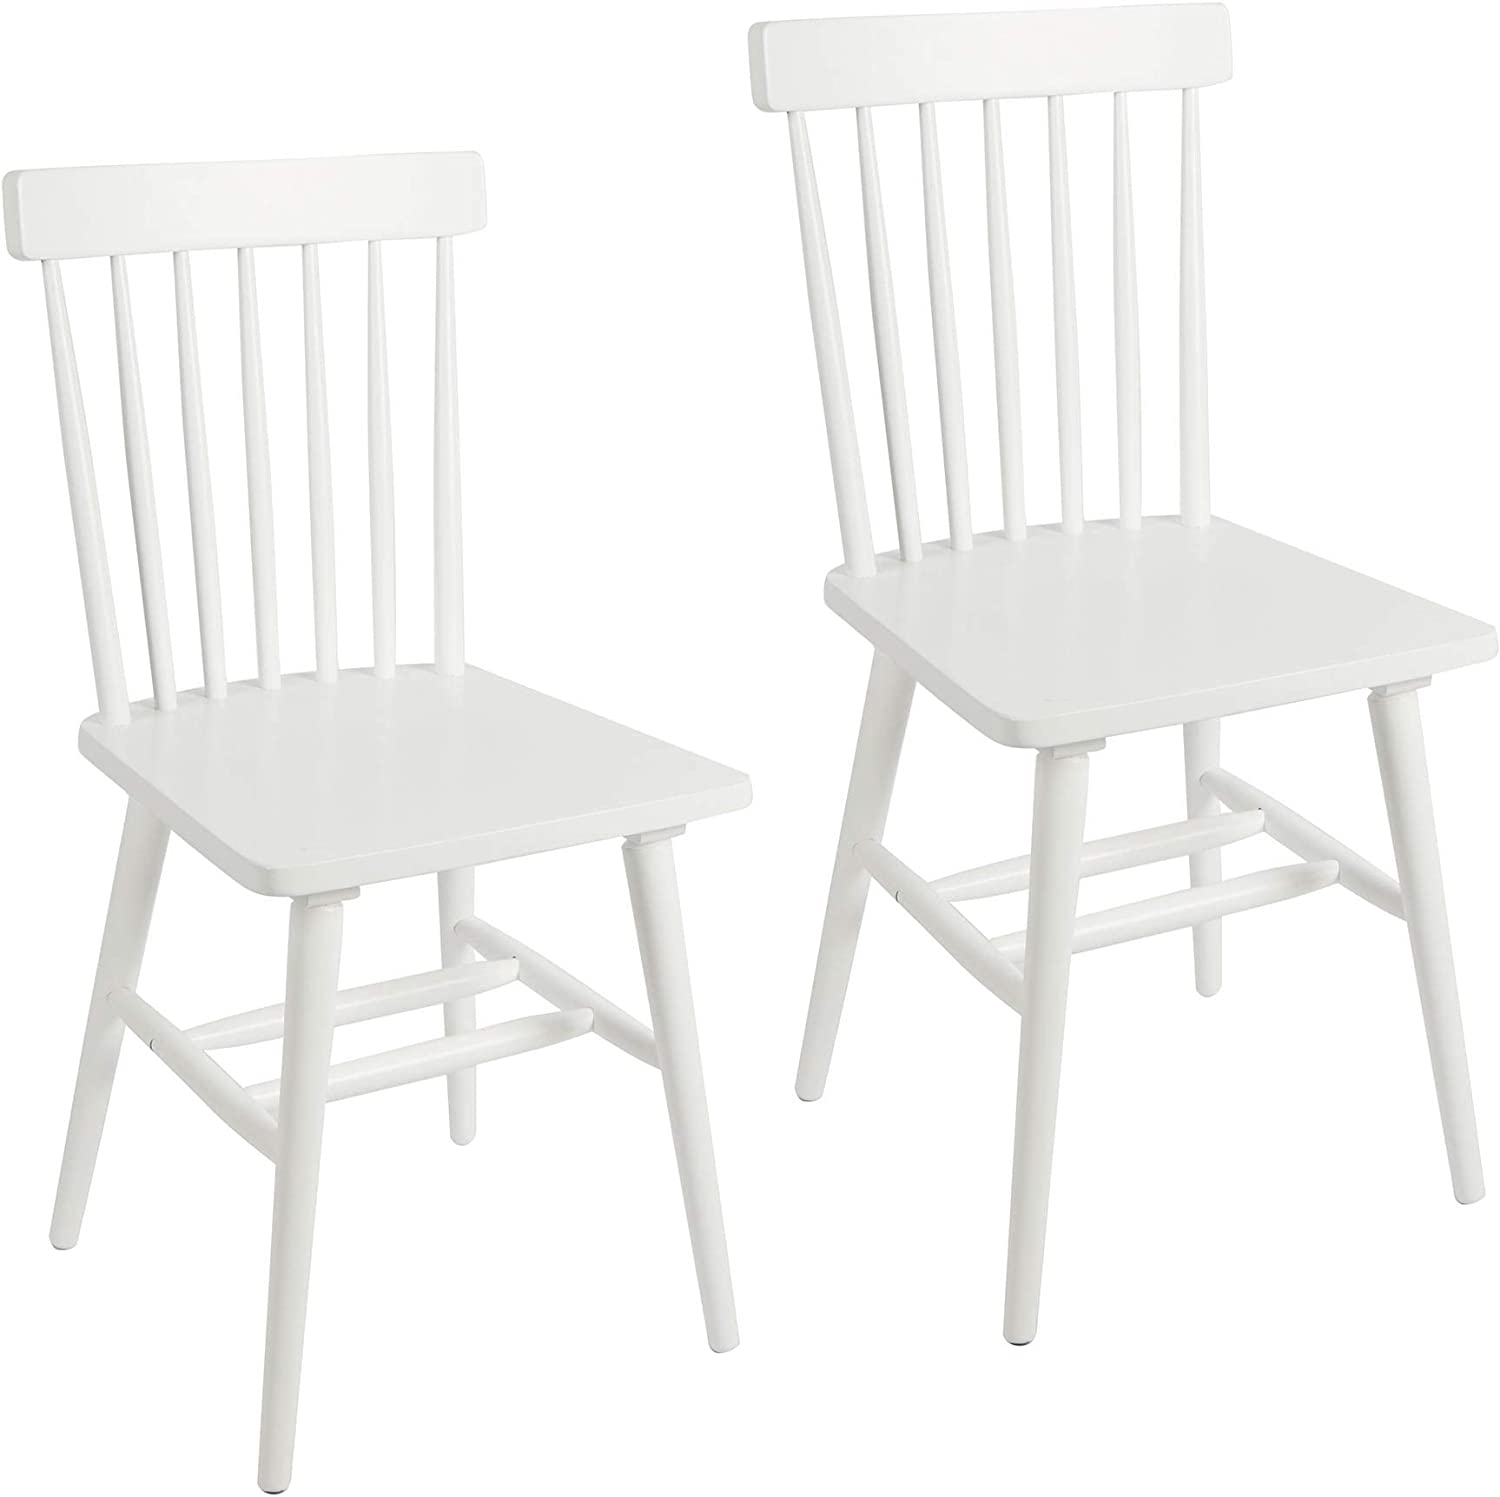 Super popular specialty store Gerald High Excellence Back Dining Chairs White Set 2 of